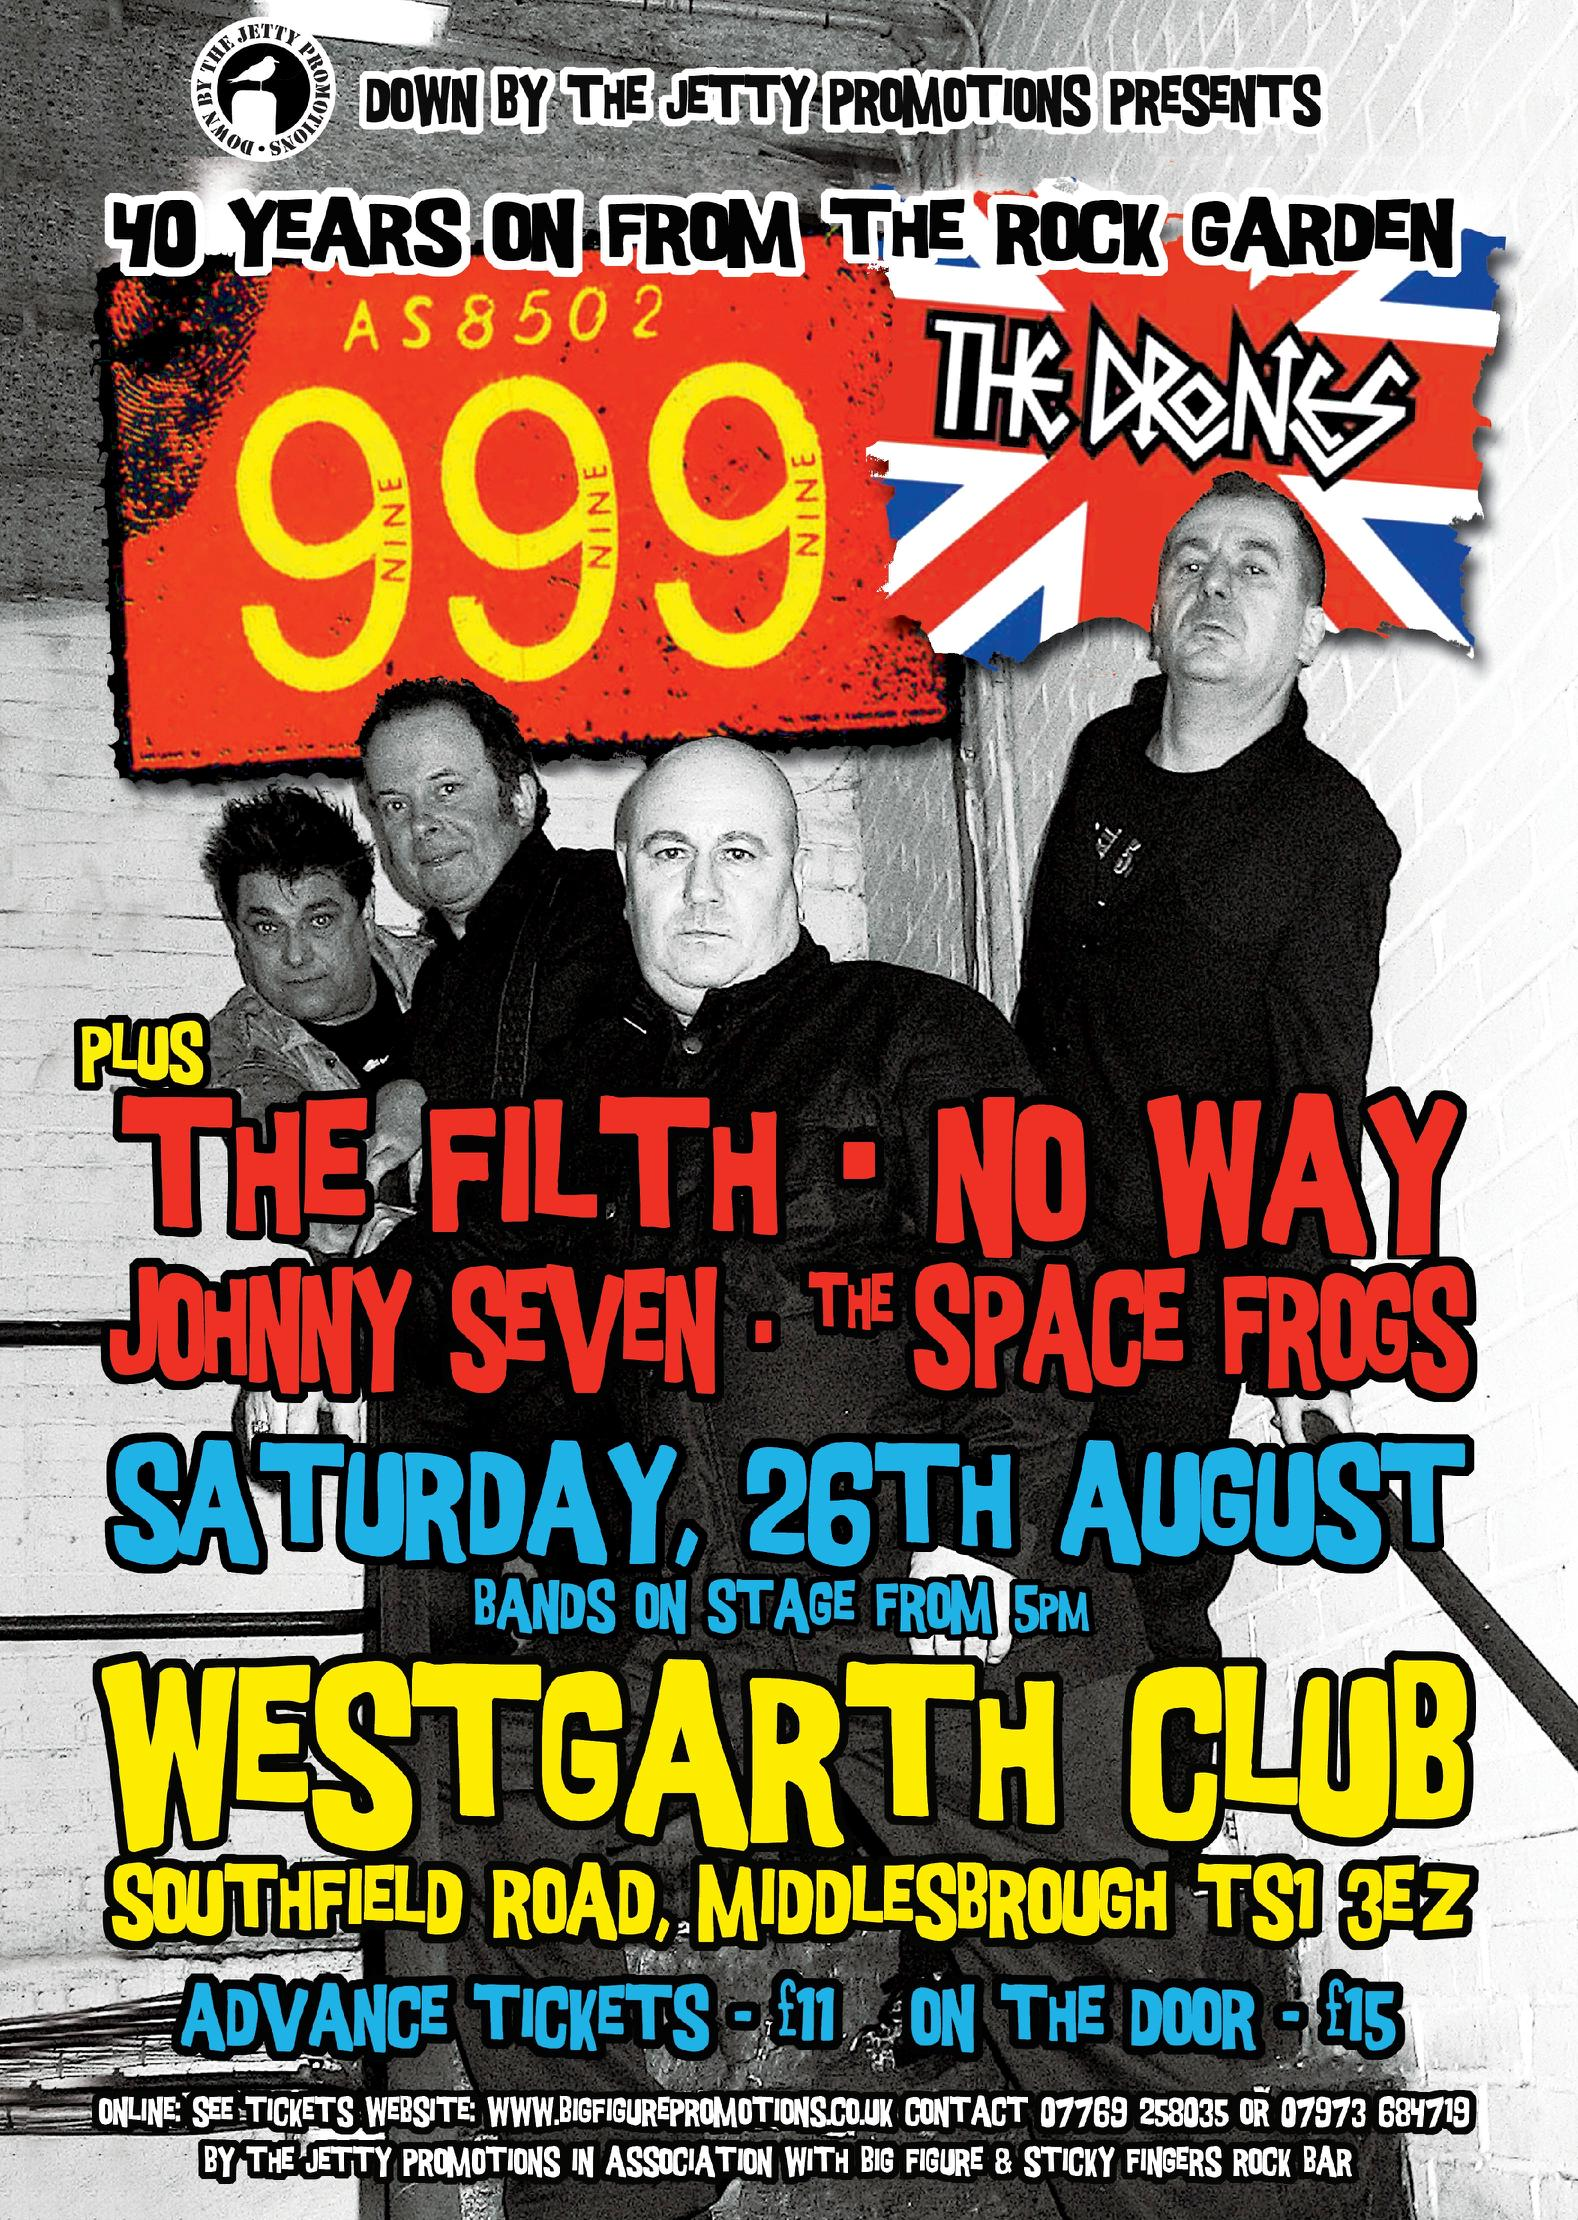 999 Live at the Westgarth Club